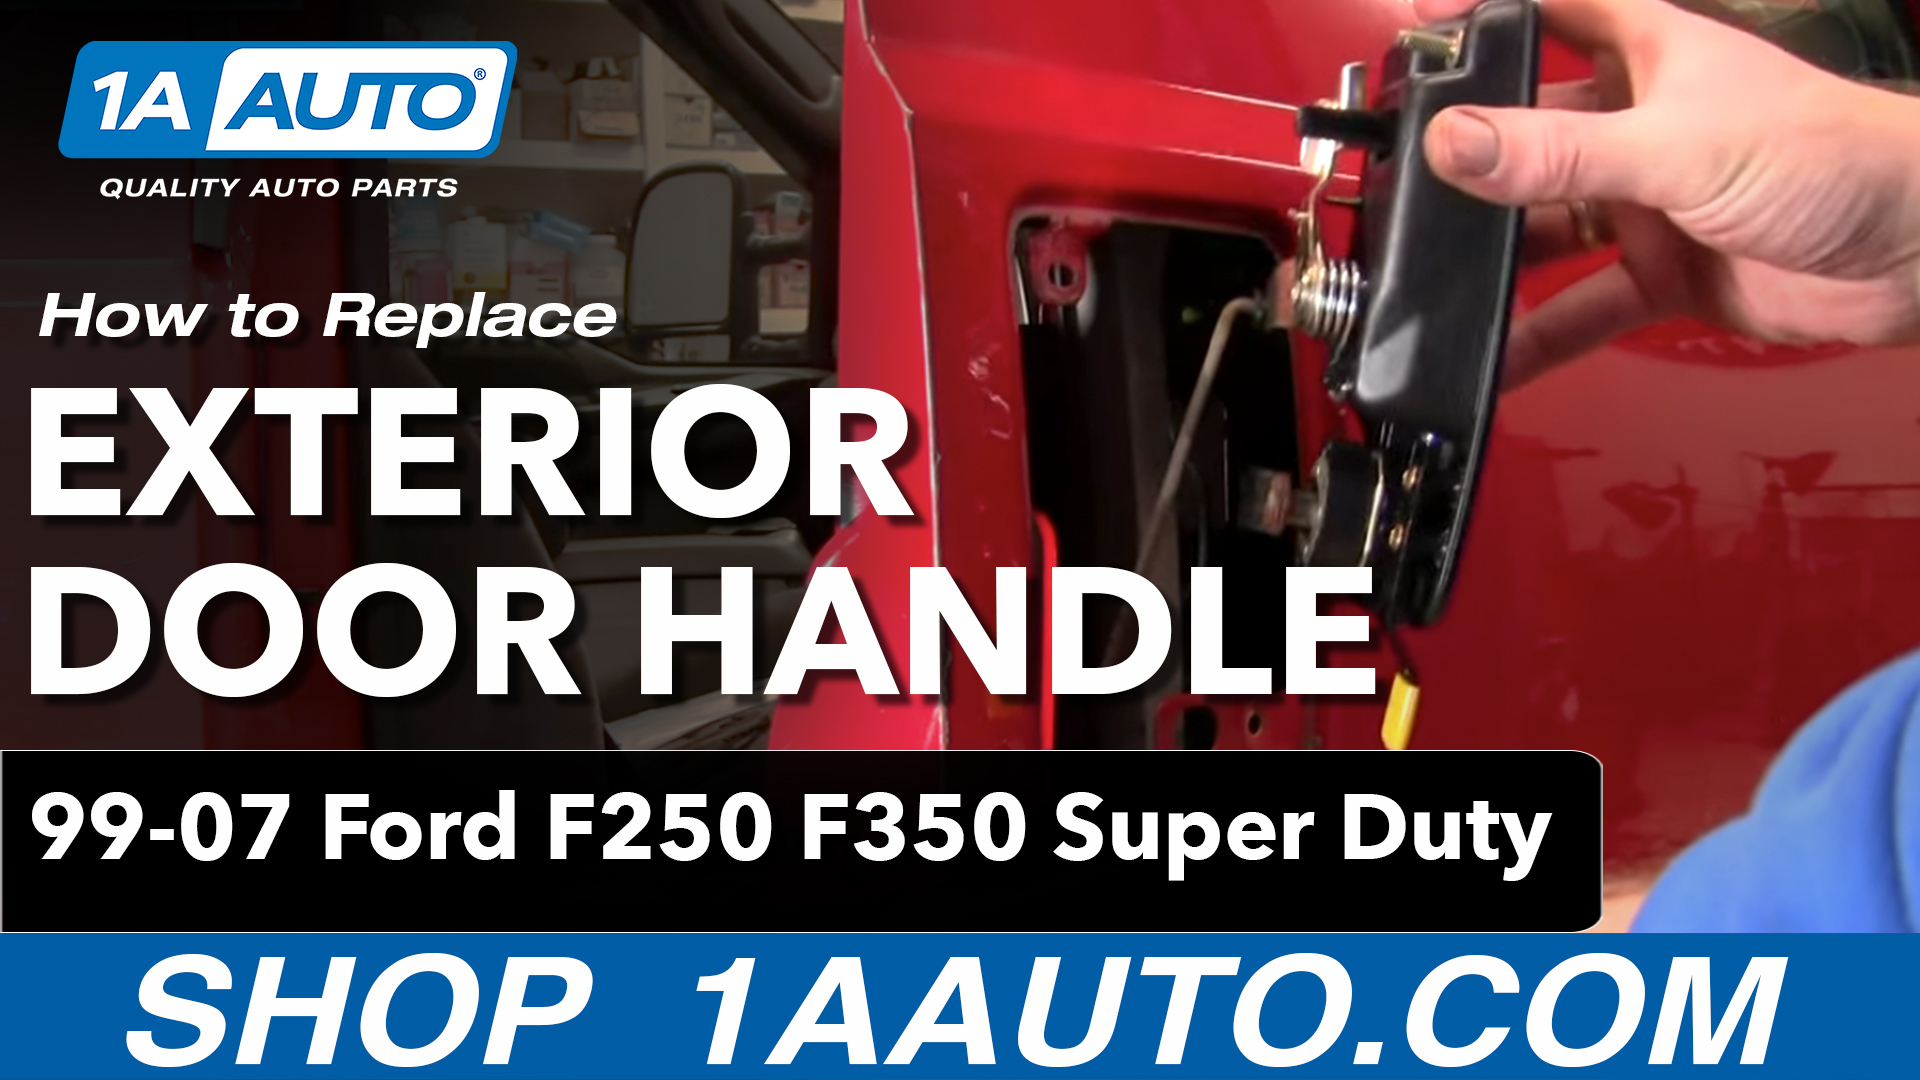 hight resolution of how to replace exterior door handle 99 15 ford f250 super duty 1a auto ford f350 front end diagram autos weblog